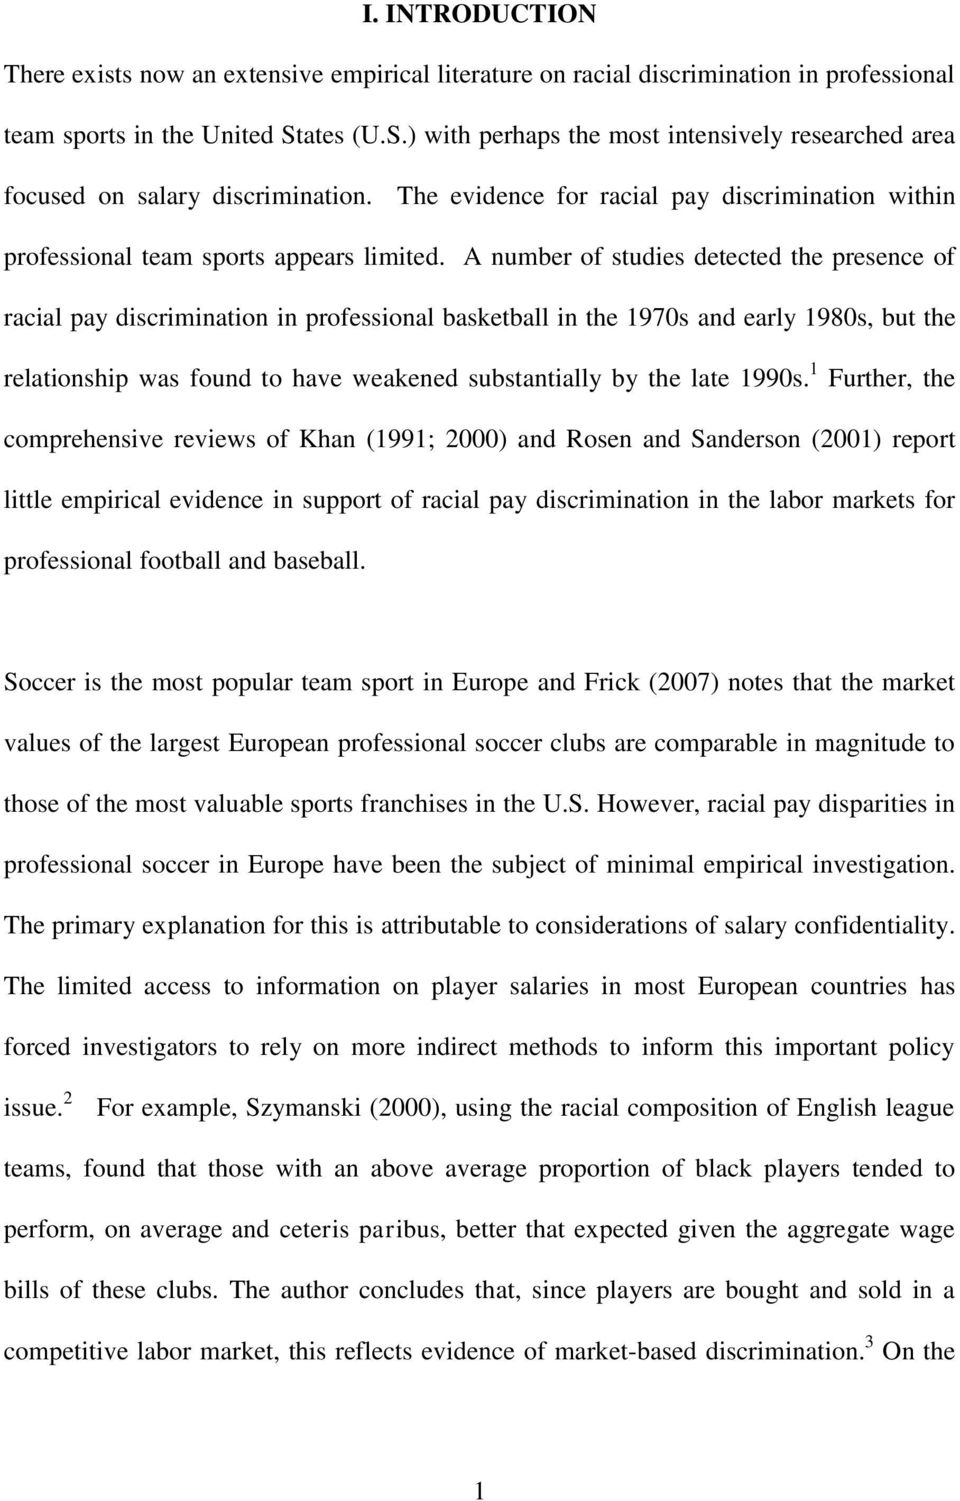 A number of studies detected the presence of racial pay discrimination in professional basketball in the 1970s and early 1980s, but the relationship was found to have weakened substantially by the